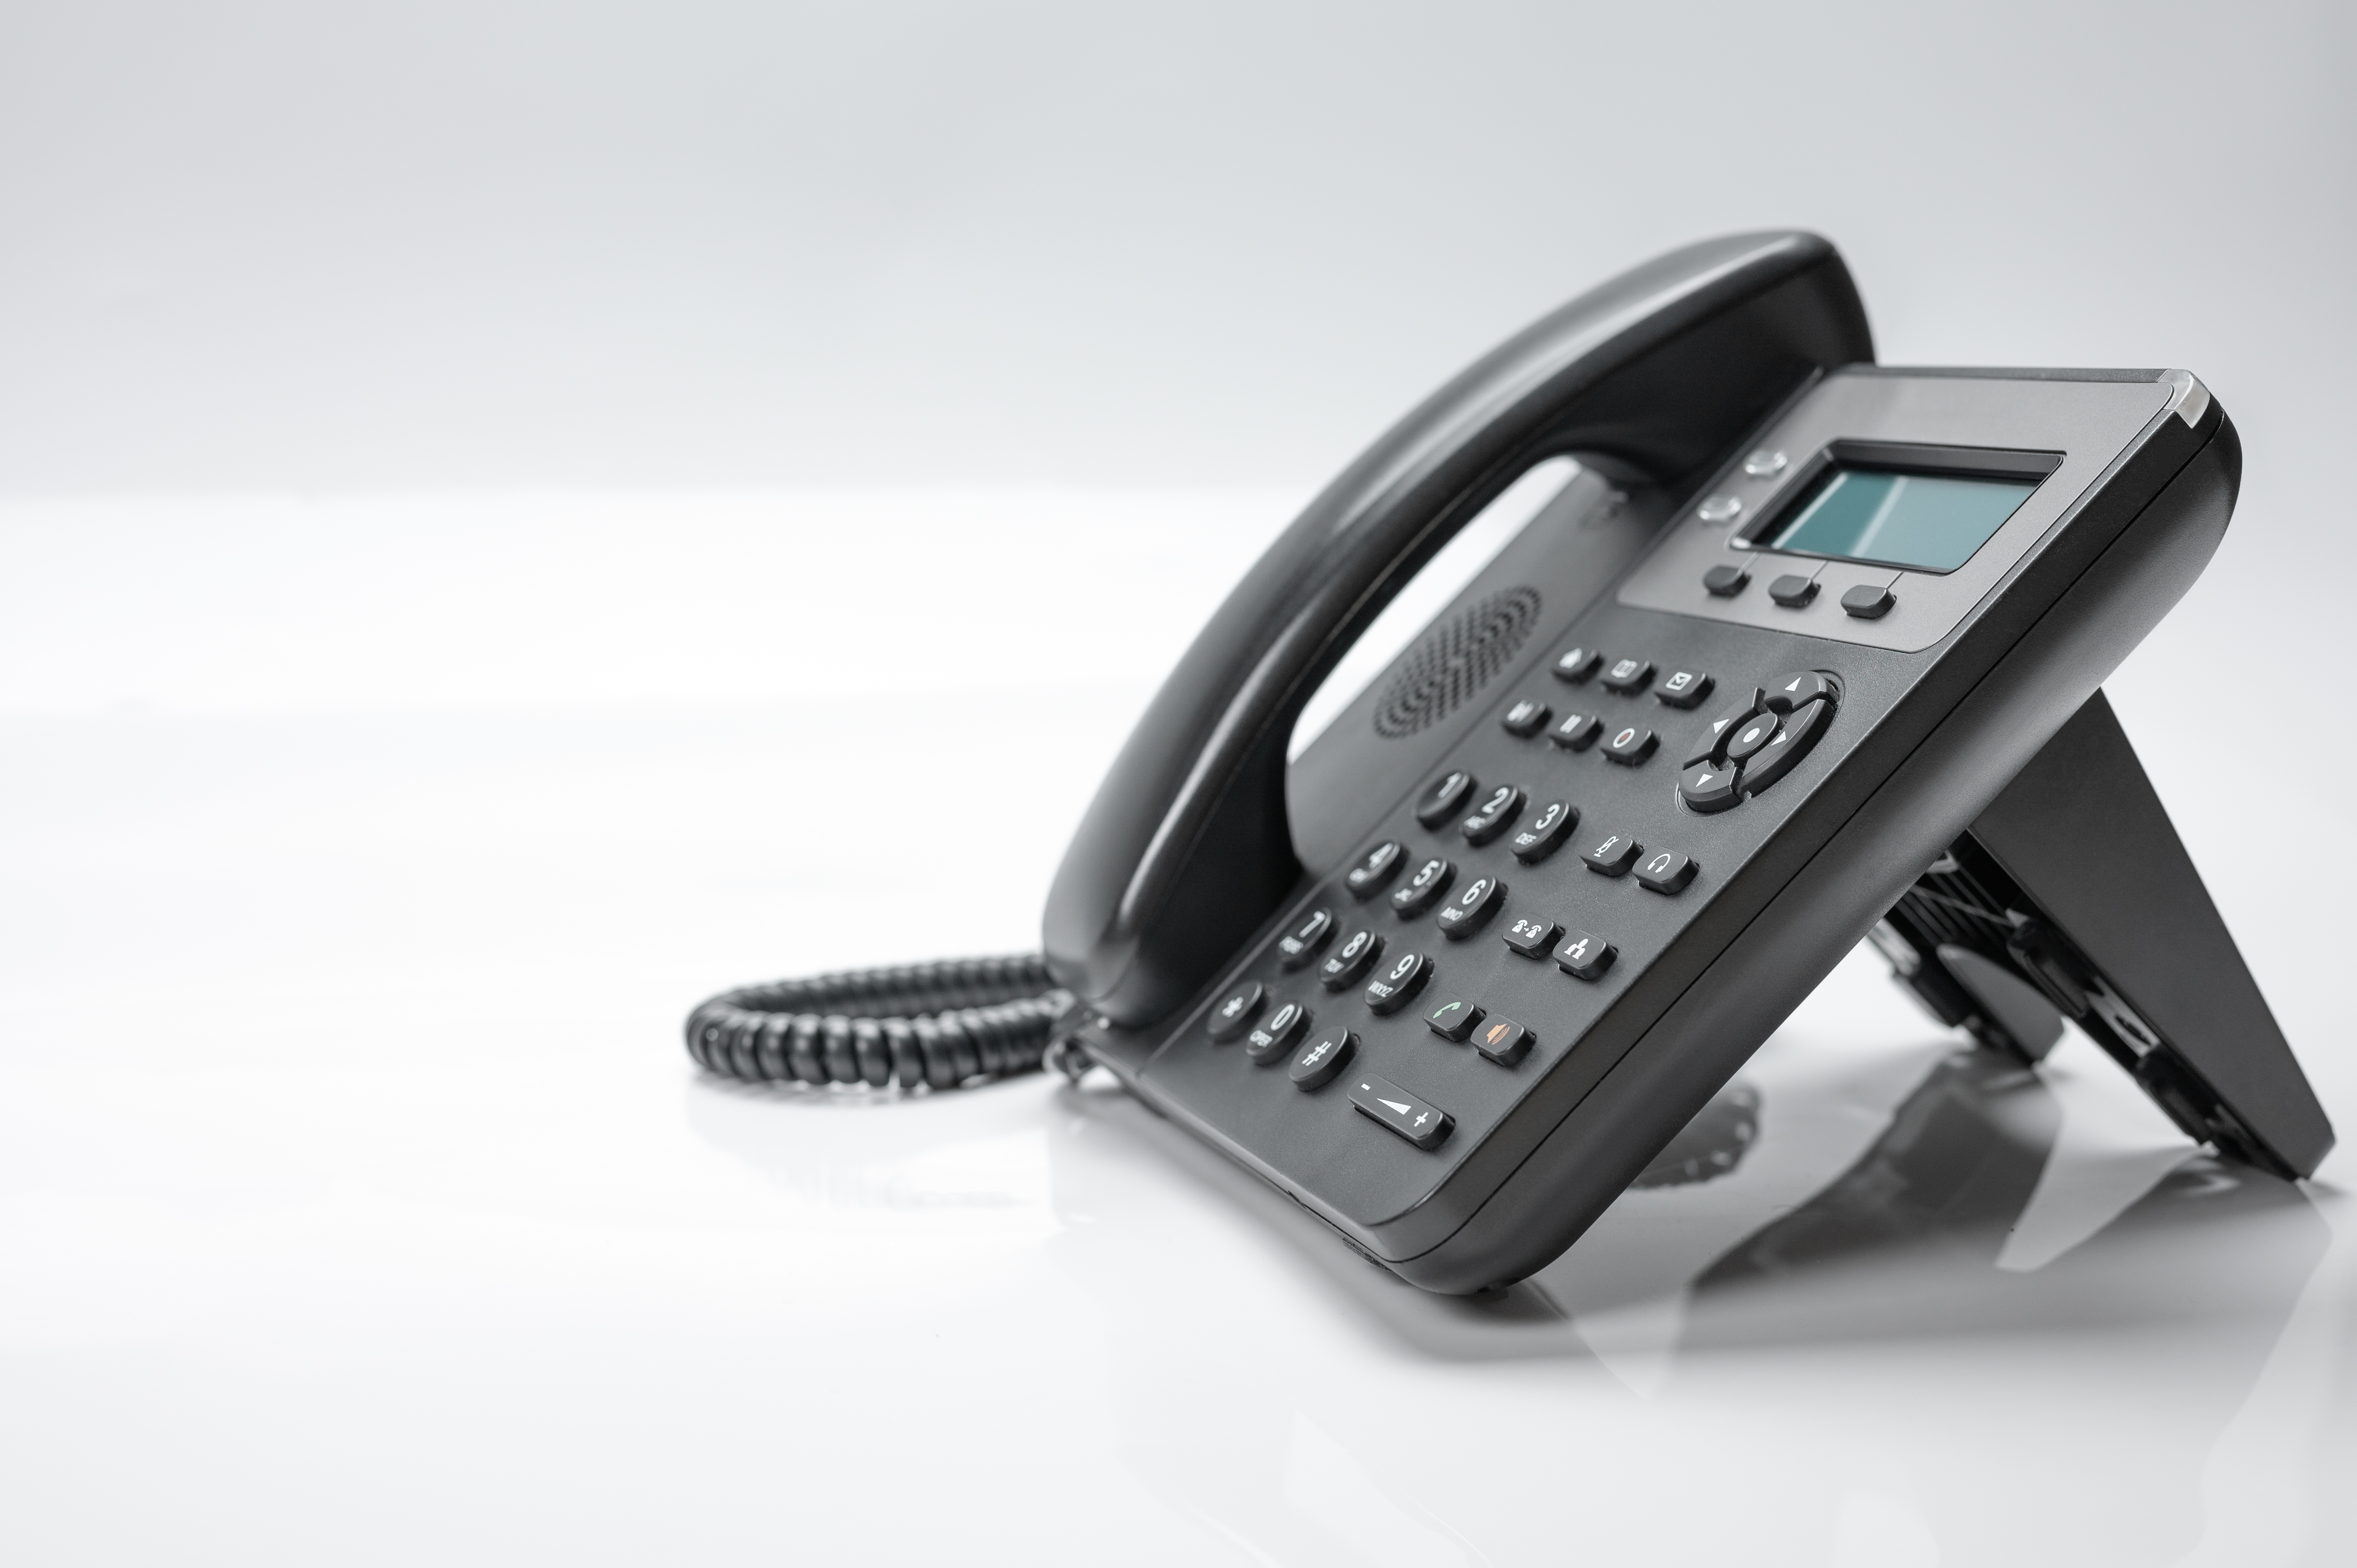 black-telephone-set-with-display-buttons